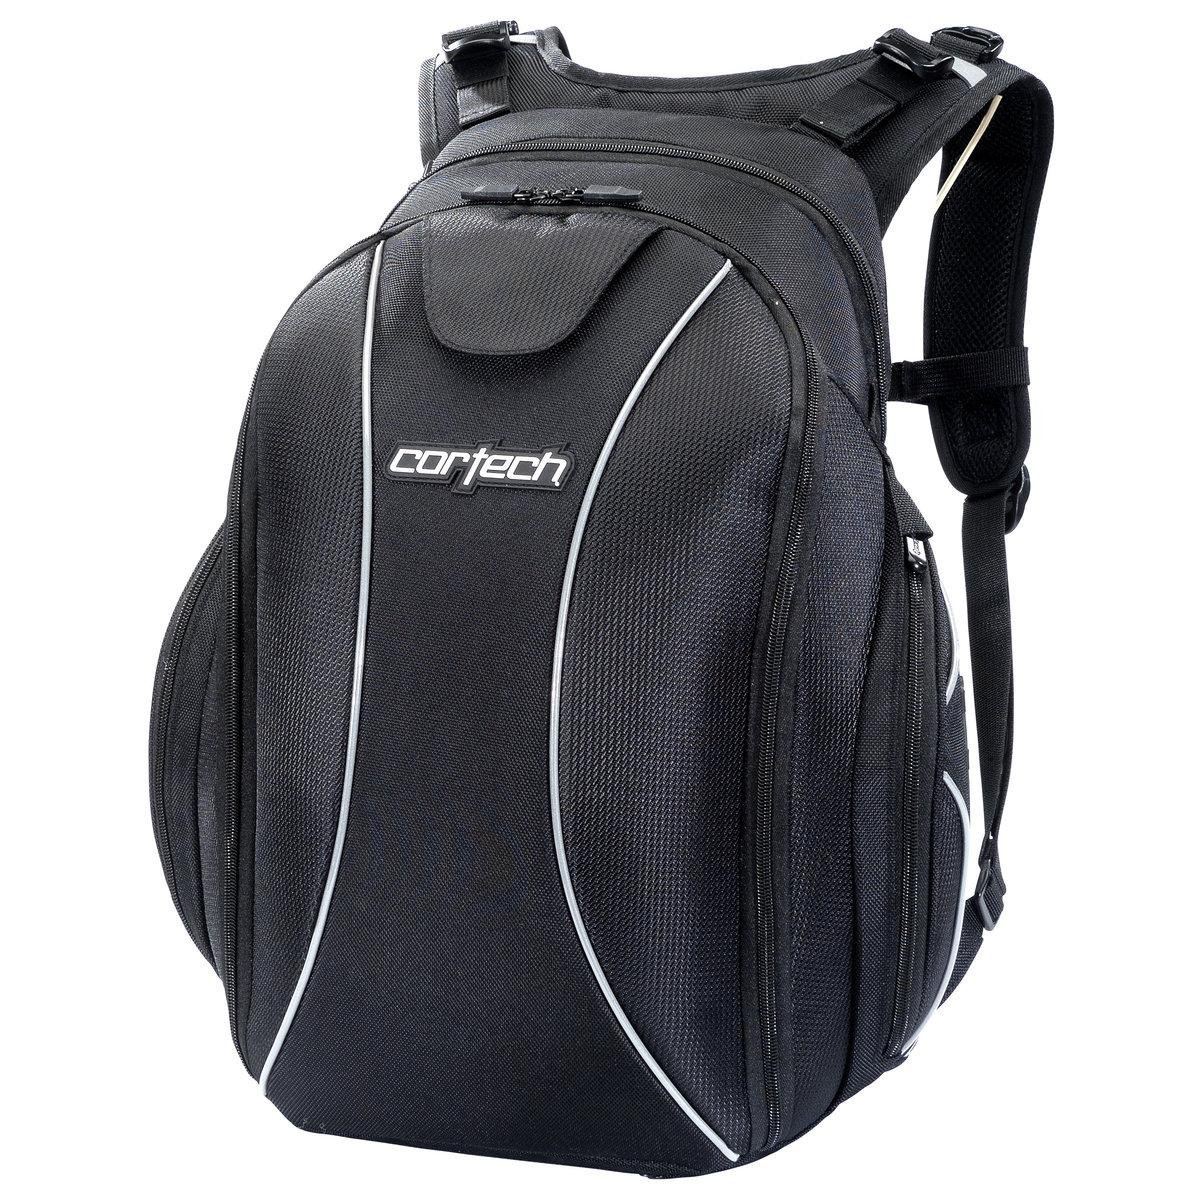 Cortech Super 2.0 Backpack with Built In Helmet Strap Black